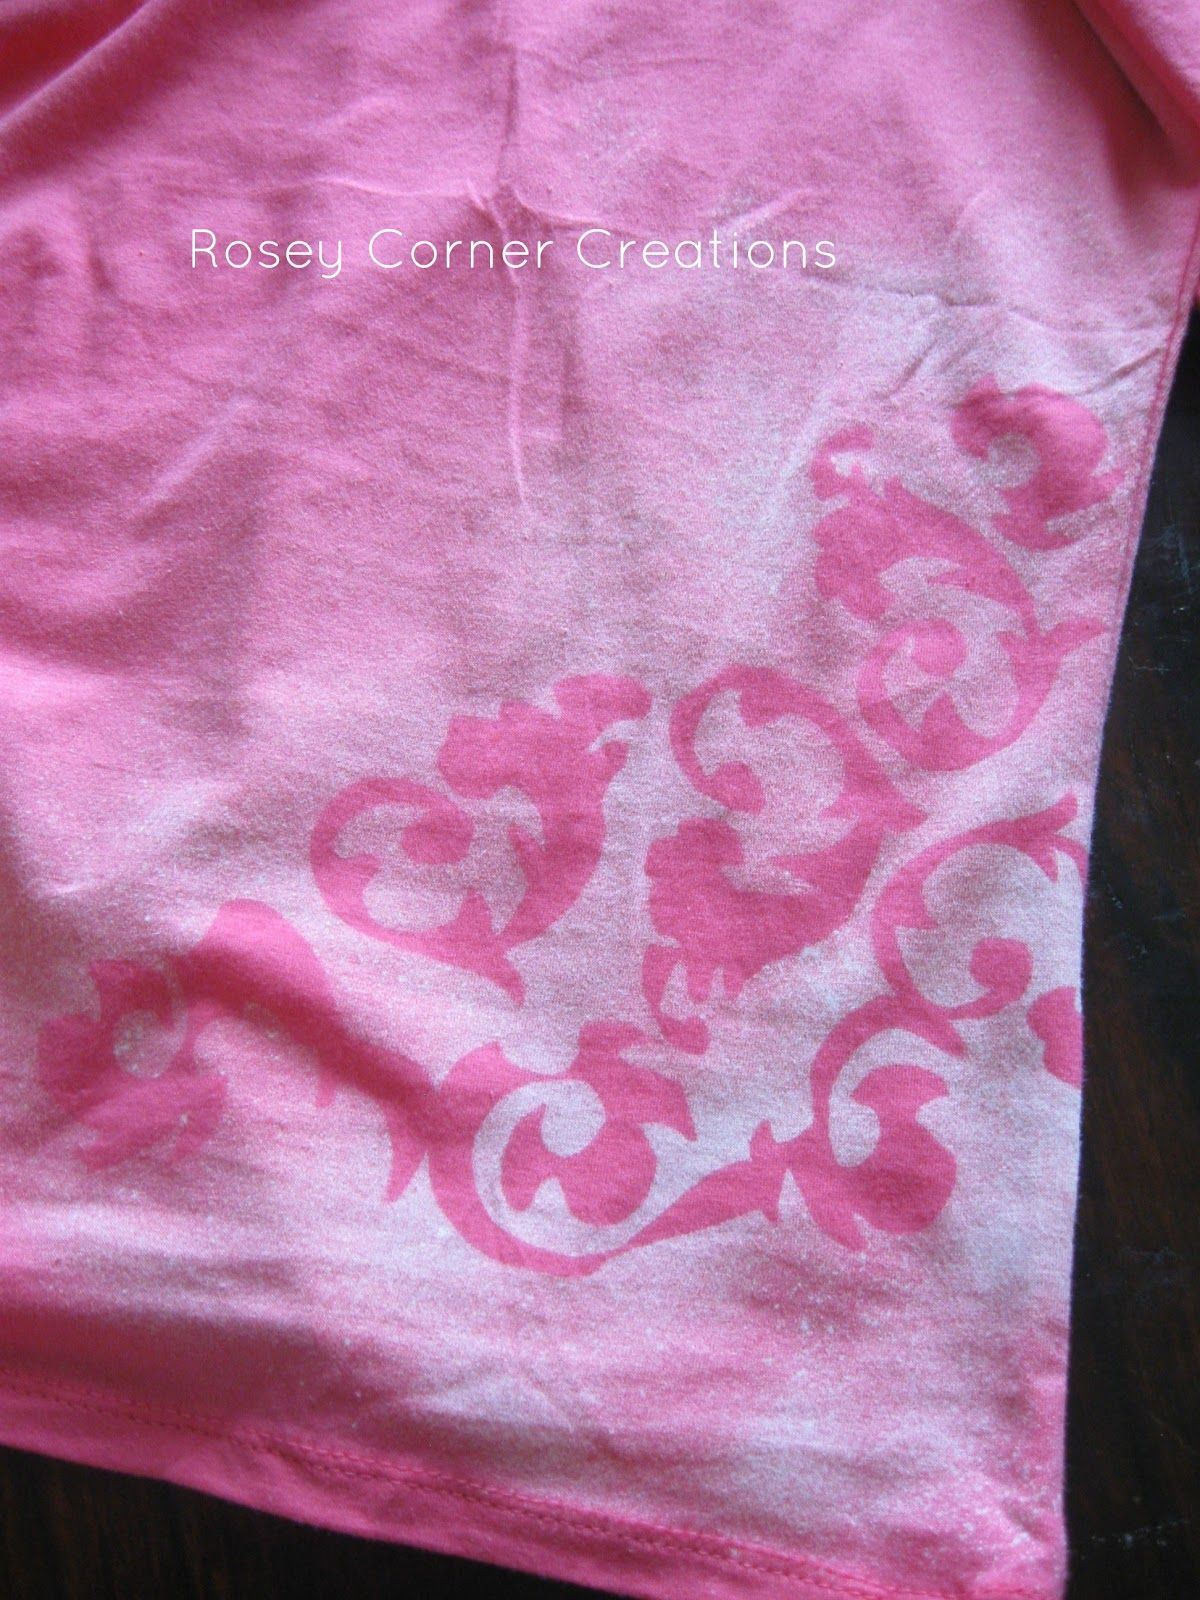 How To Bleach A Design On A T Shirt Craft Ideas Pinterest